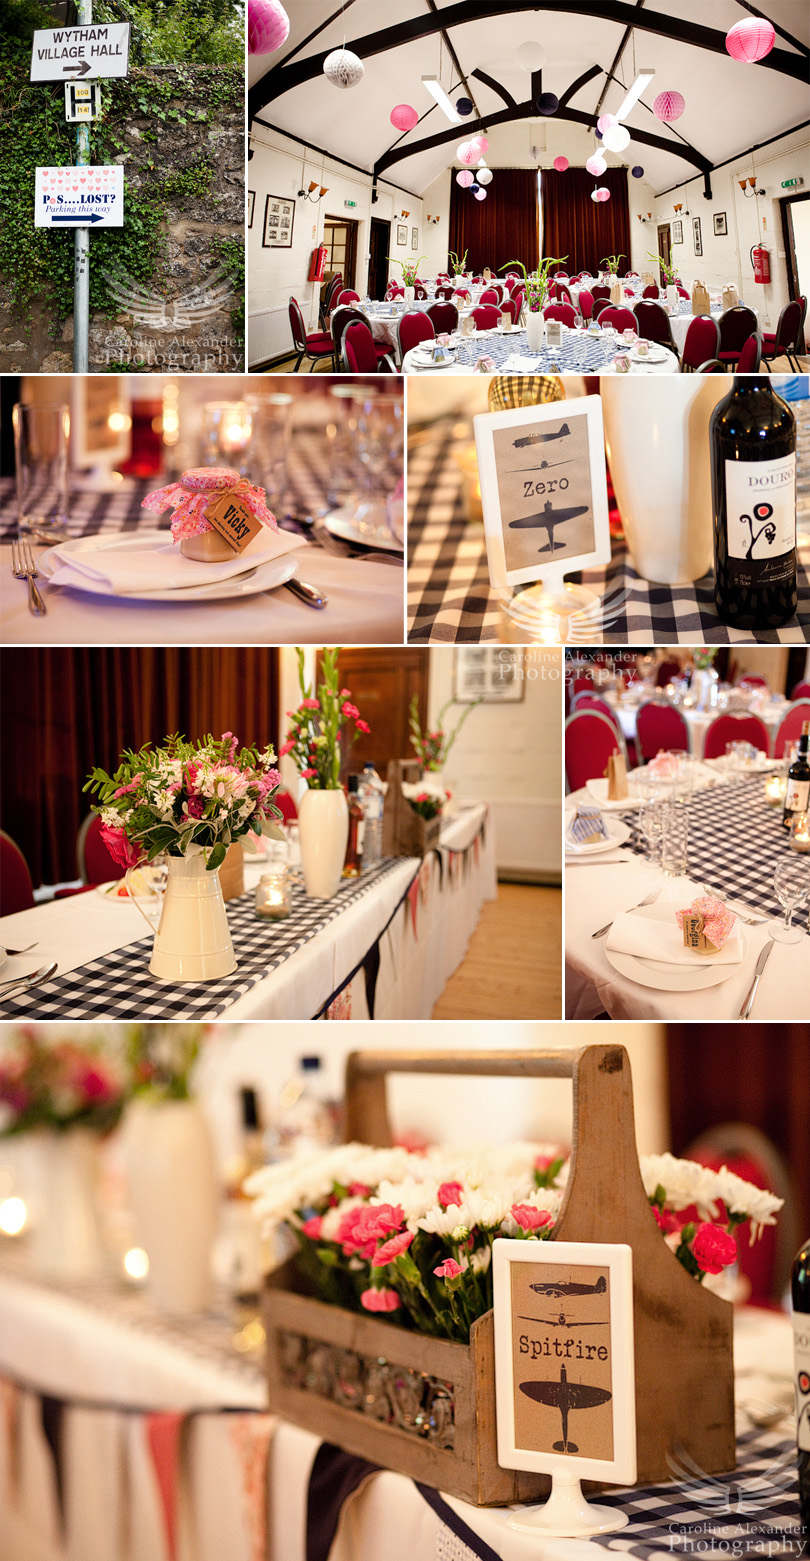 65 Wytham Village Hall Wedding Photographer